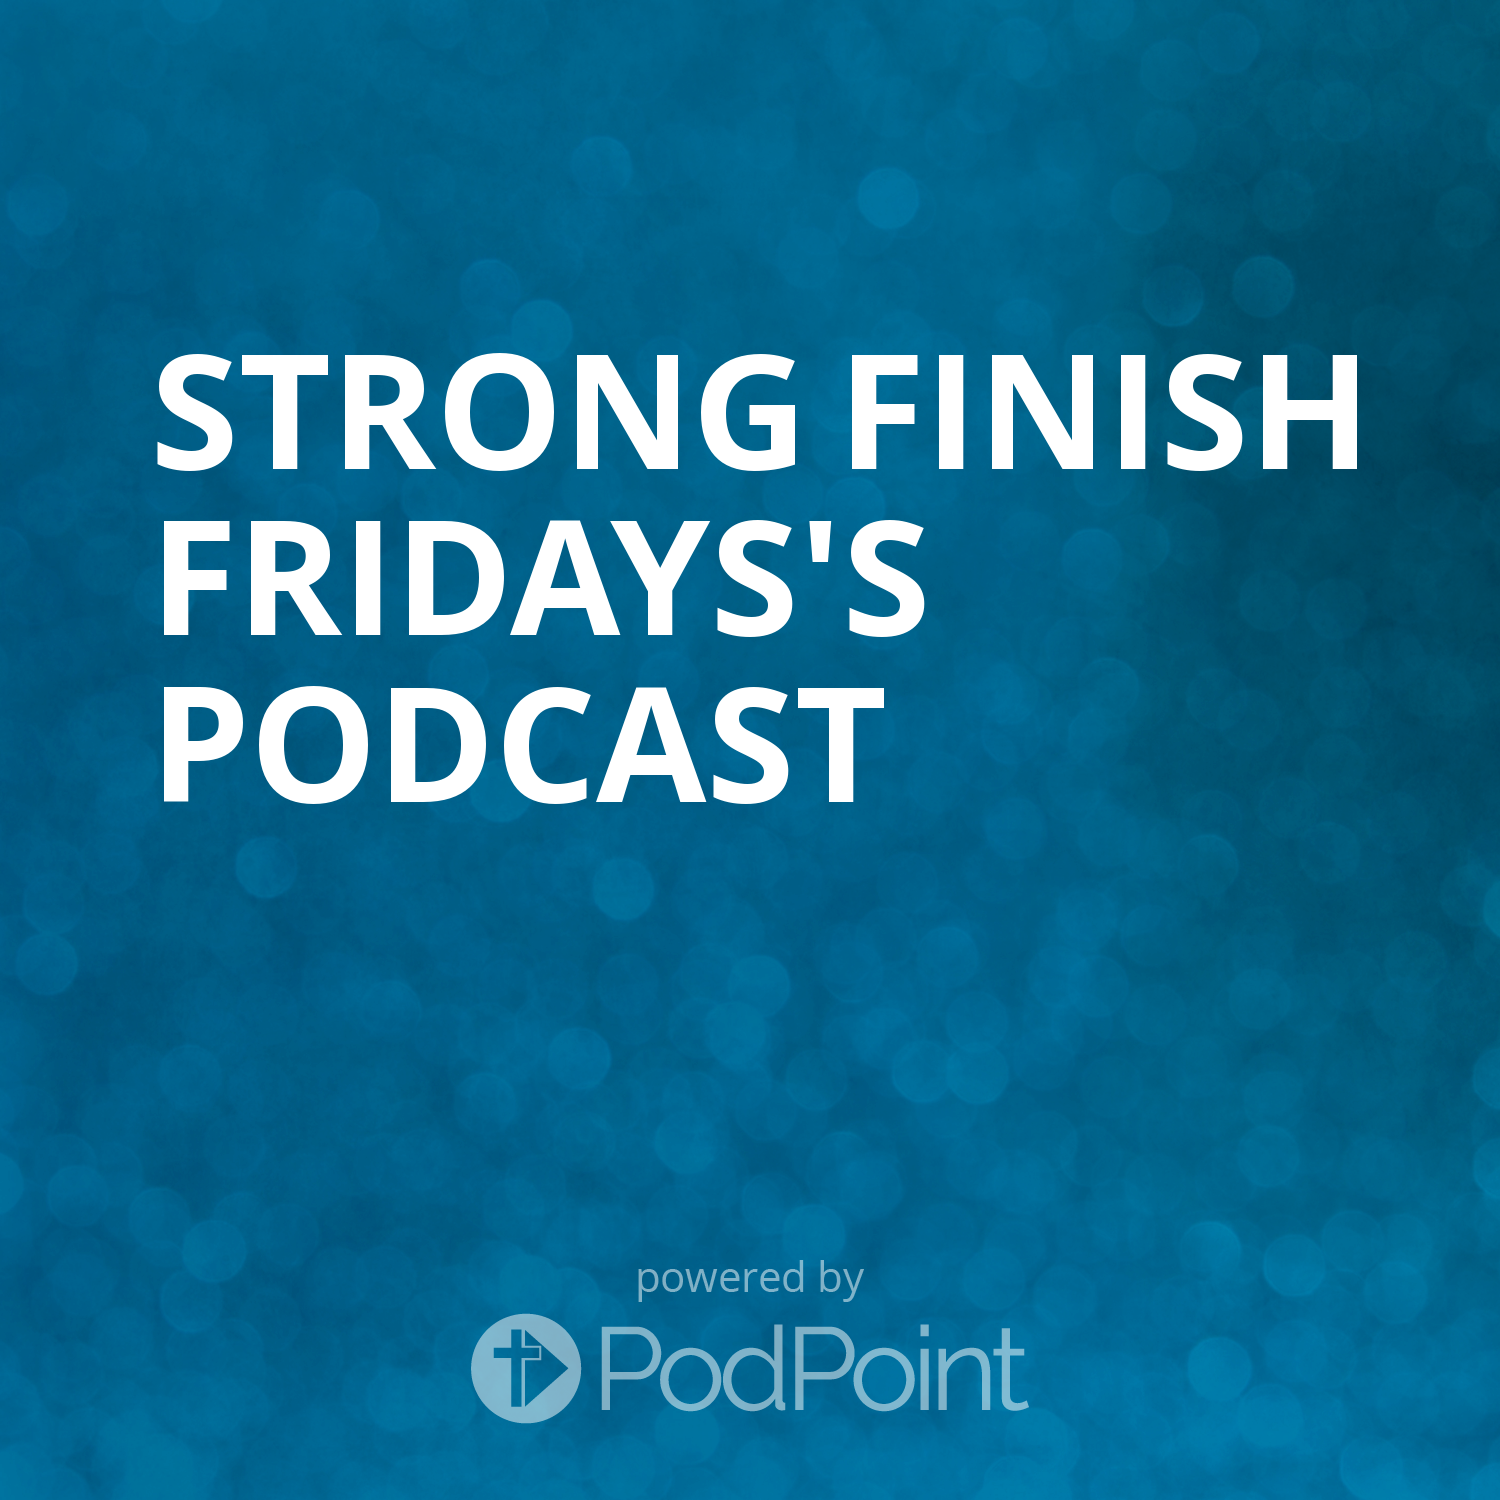 Strong Finish Fridays's Podcast